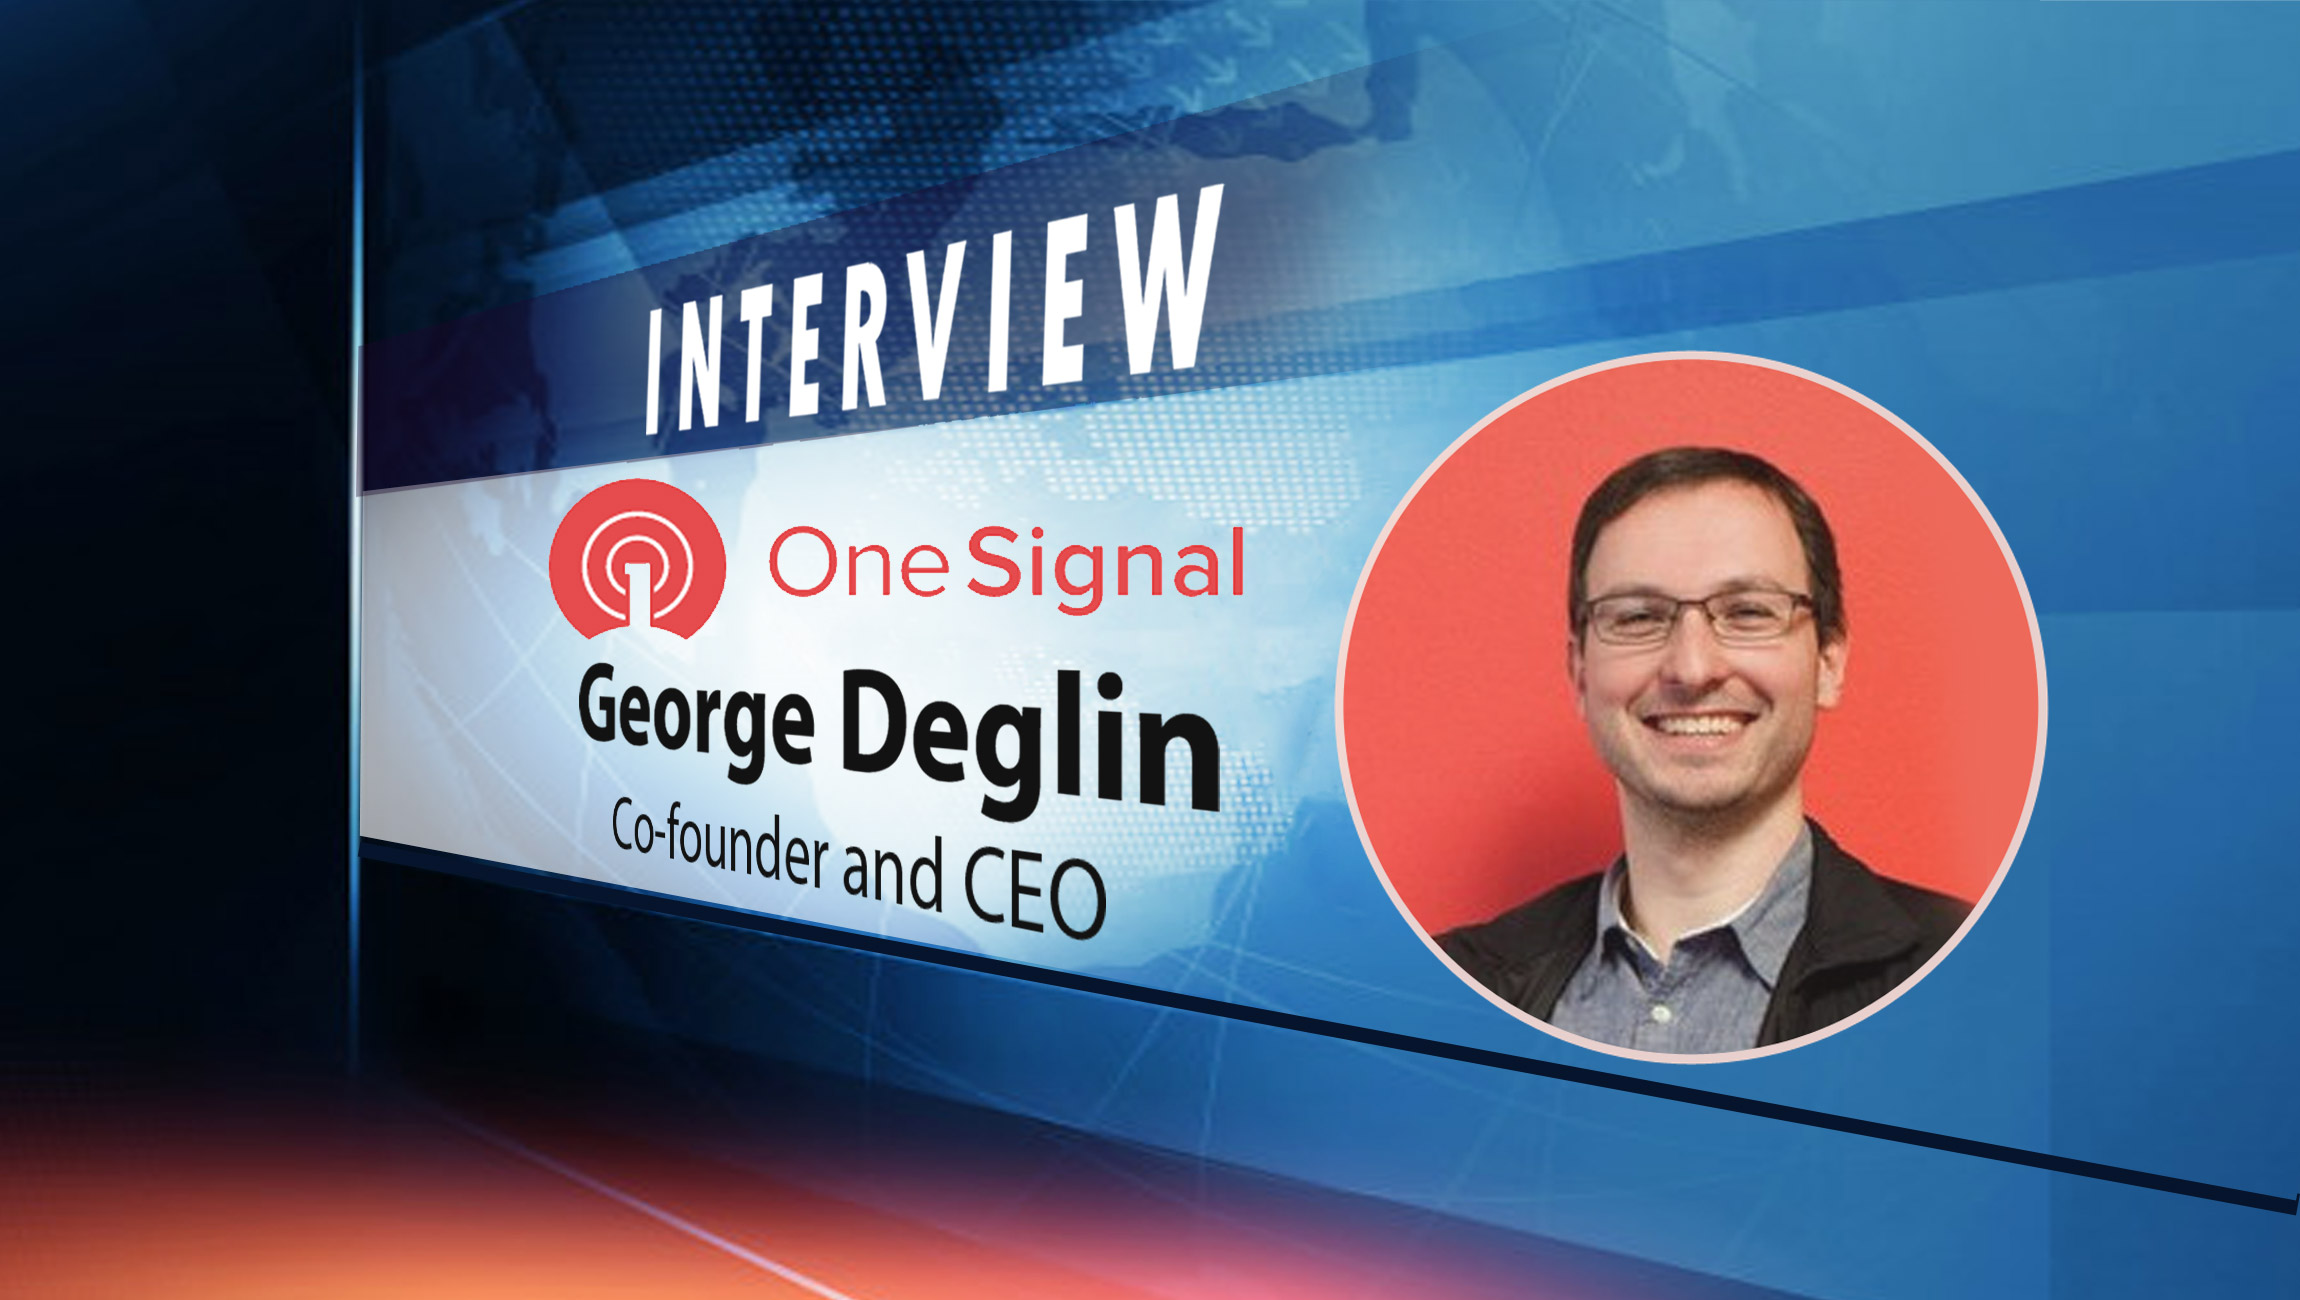 Martech Interview with George Deglin, Co-founder and CEO at OneSignal